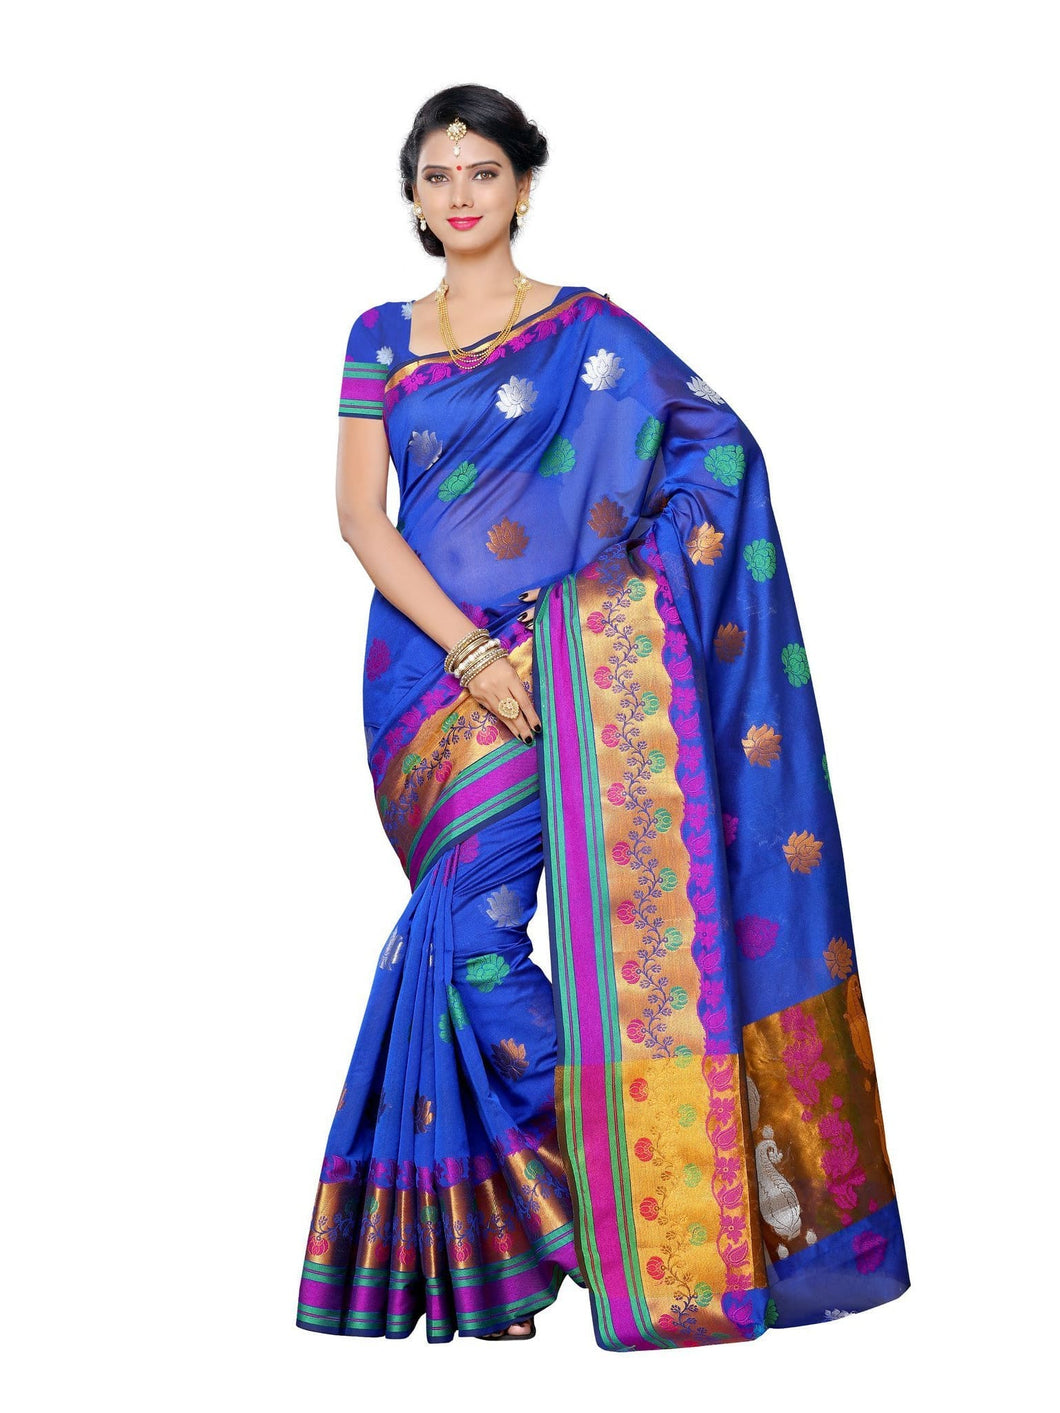 MIMOSA Multicolor Floral Kanjivaram Art Silk Saree with Blouse in Color Violet (3286-ab-139-violt) - kupindaindia